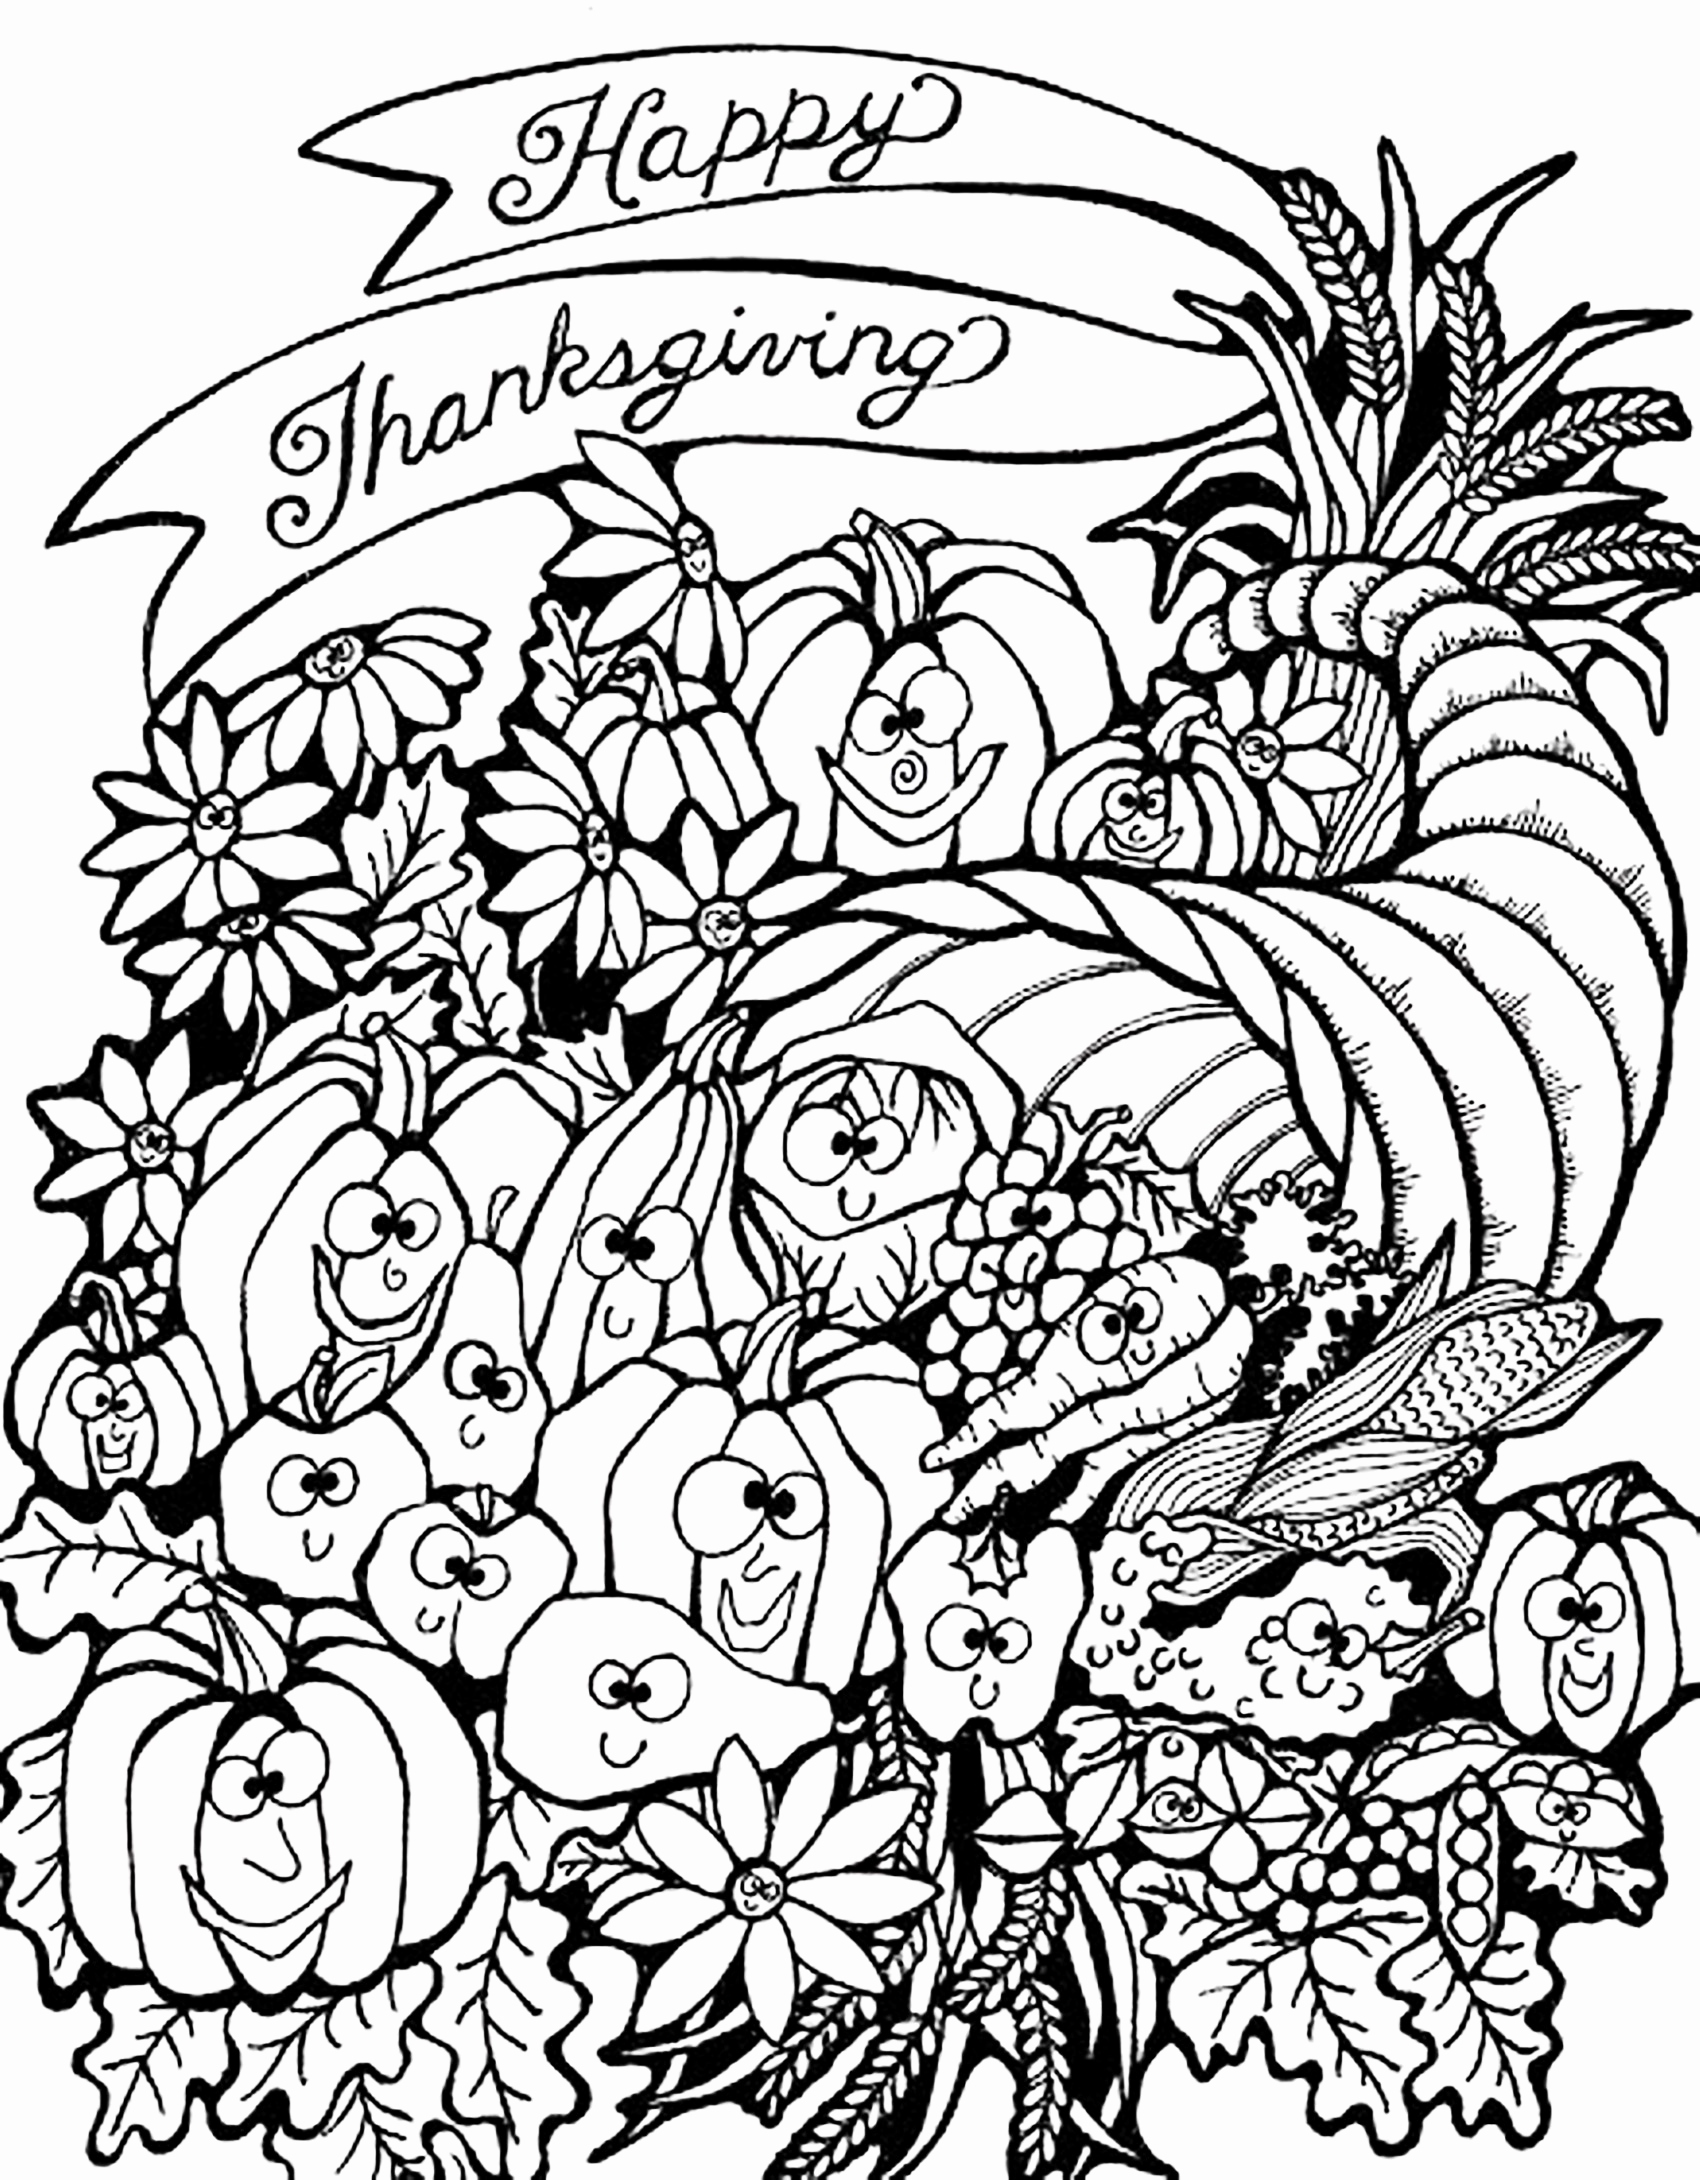 1700x2180 Thanksgiving Coloring Sheets Free Unique Cool Od Dog Coloring